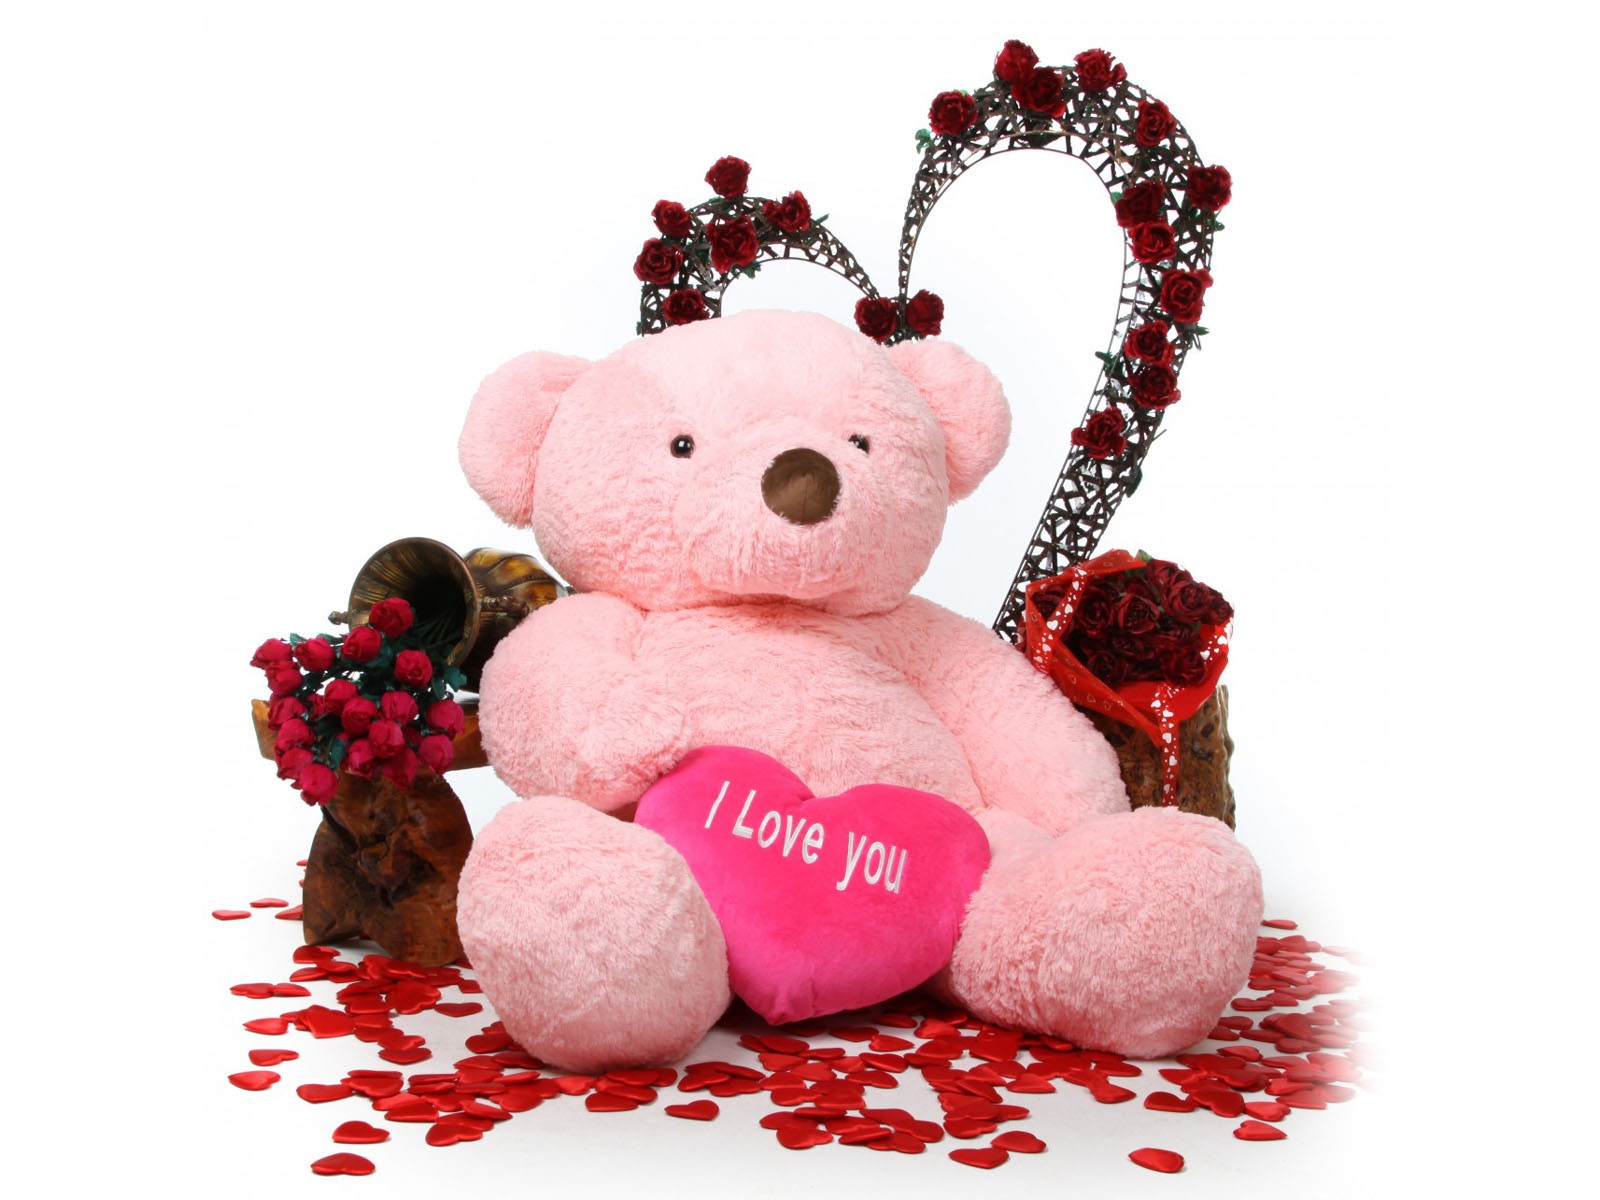 Teddy bear with love images - photo#5